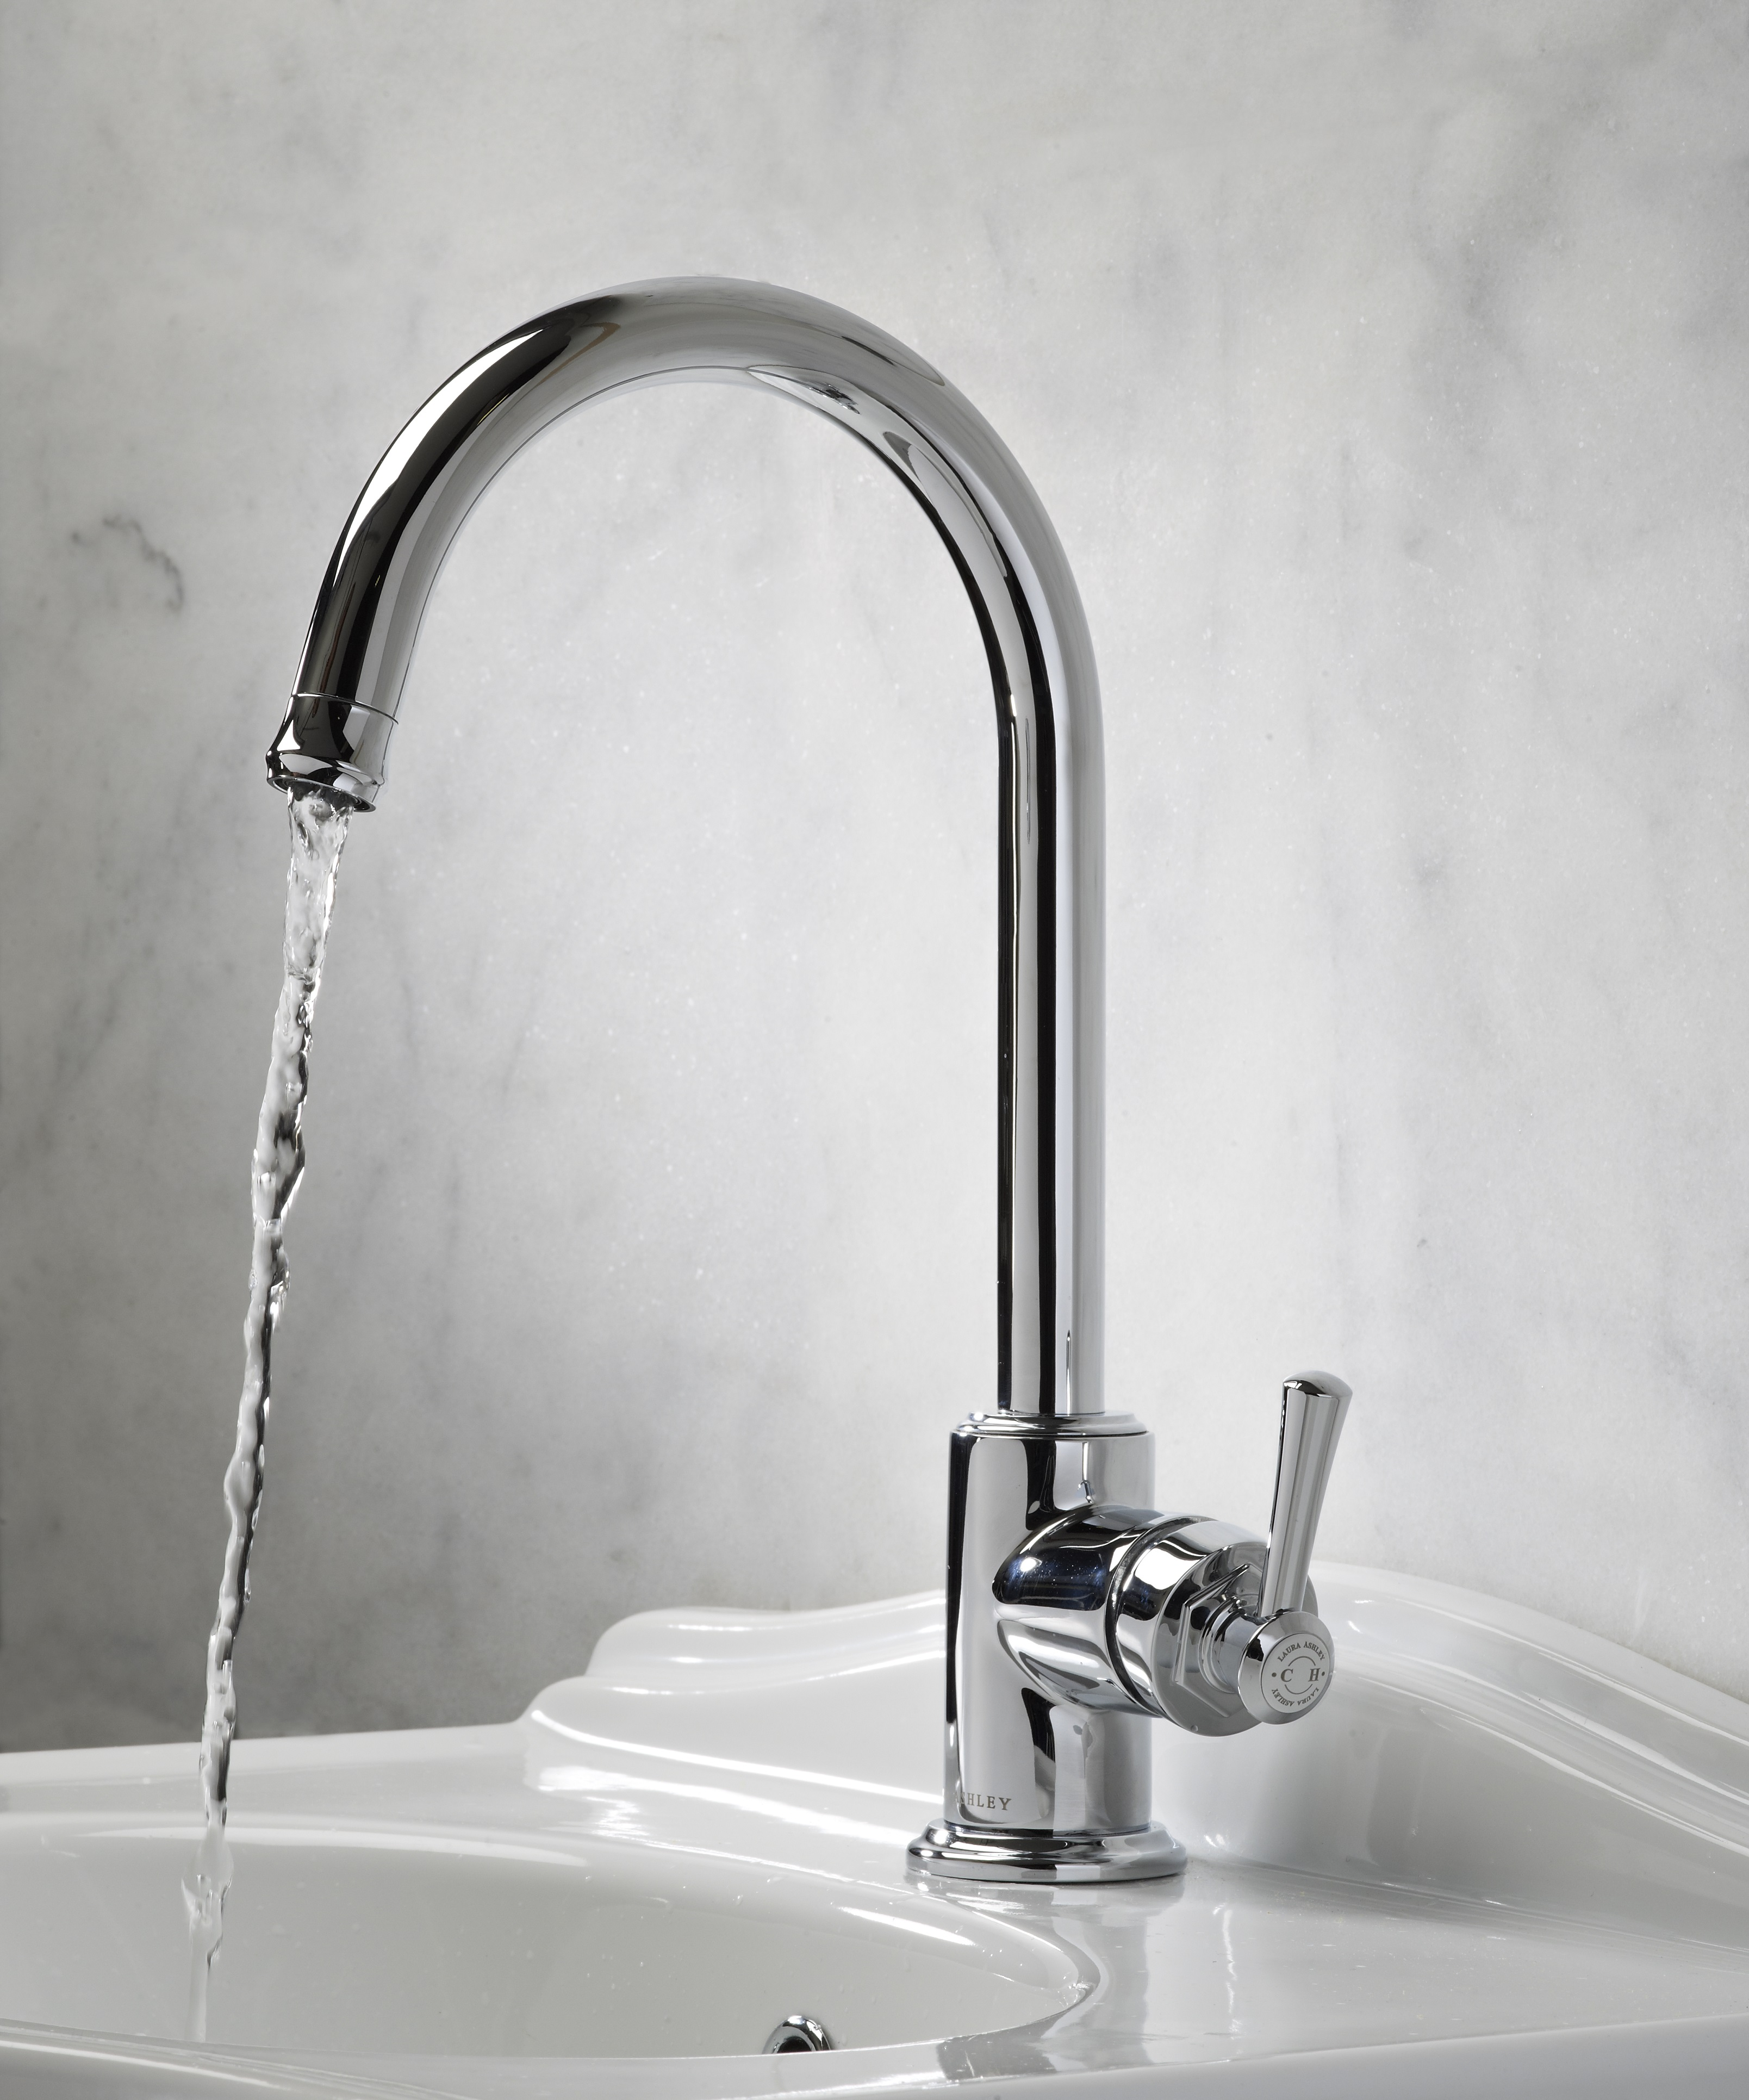 York side action basin mixer